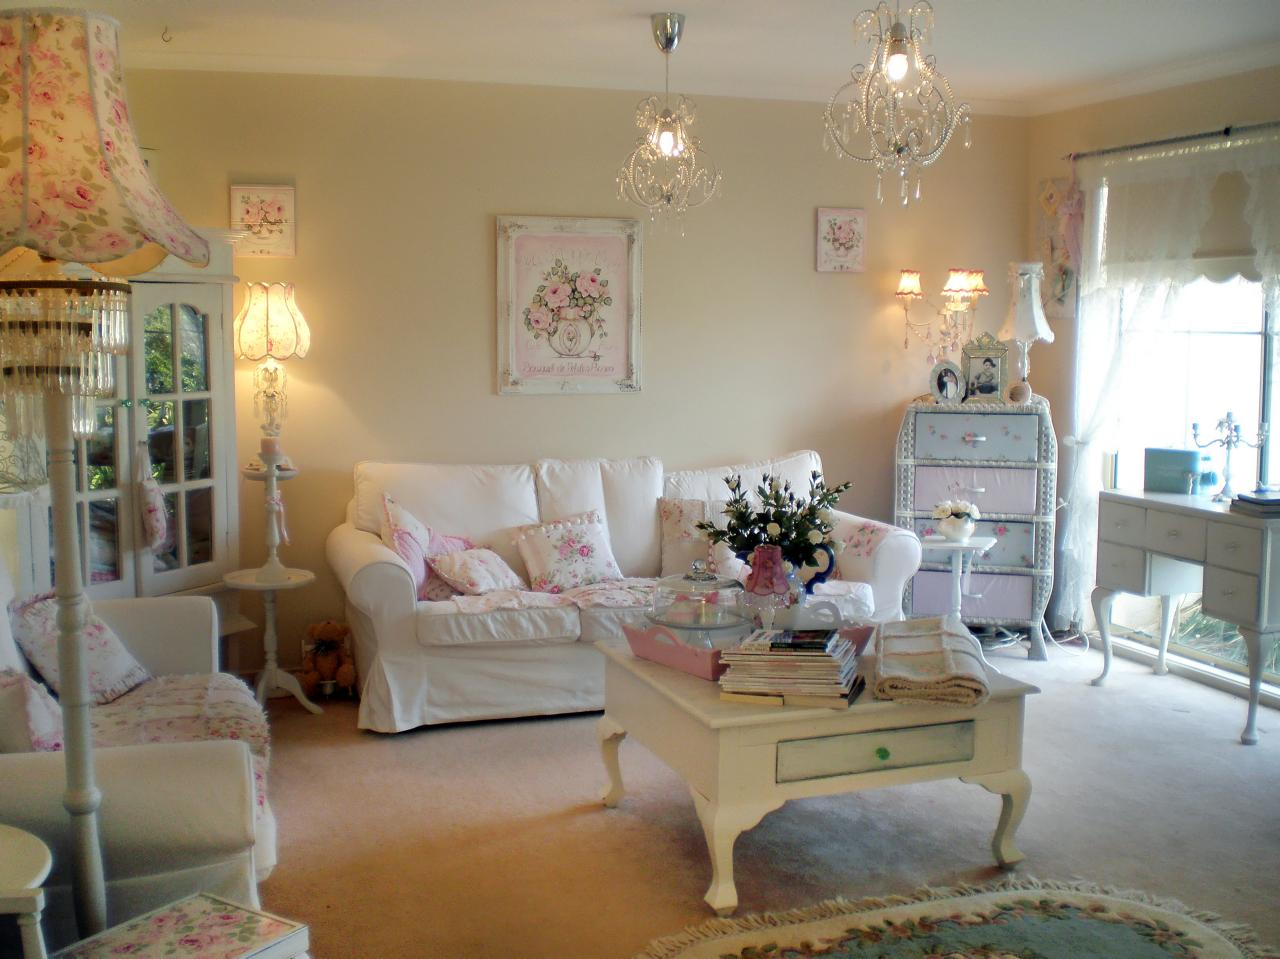 Decorar Salon Shabby Chic Decoracion Y Estilo En Auge Hoy Lowcost